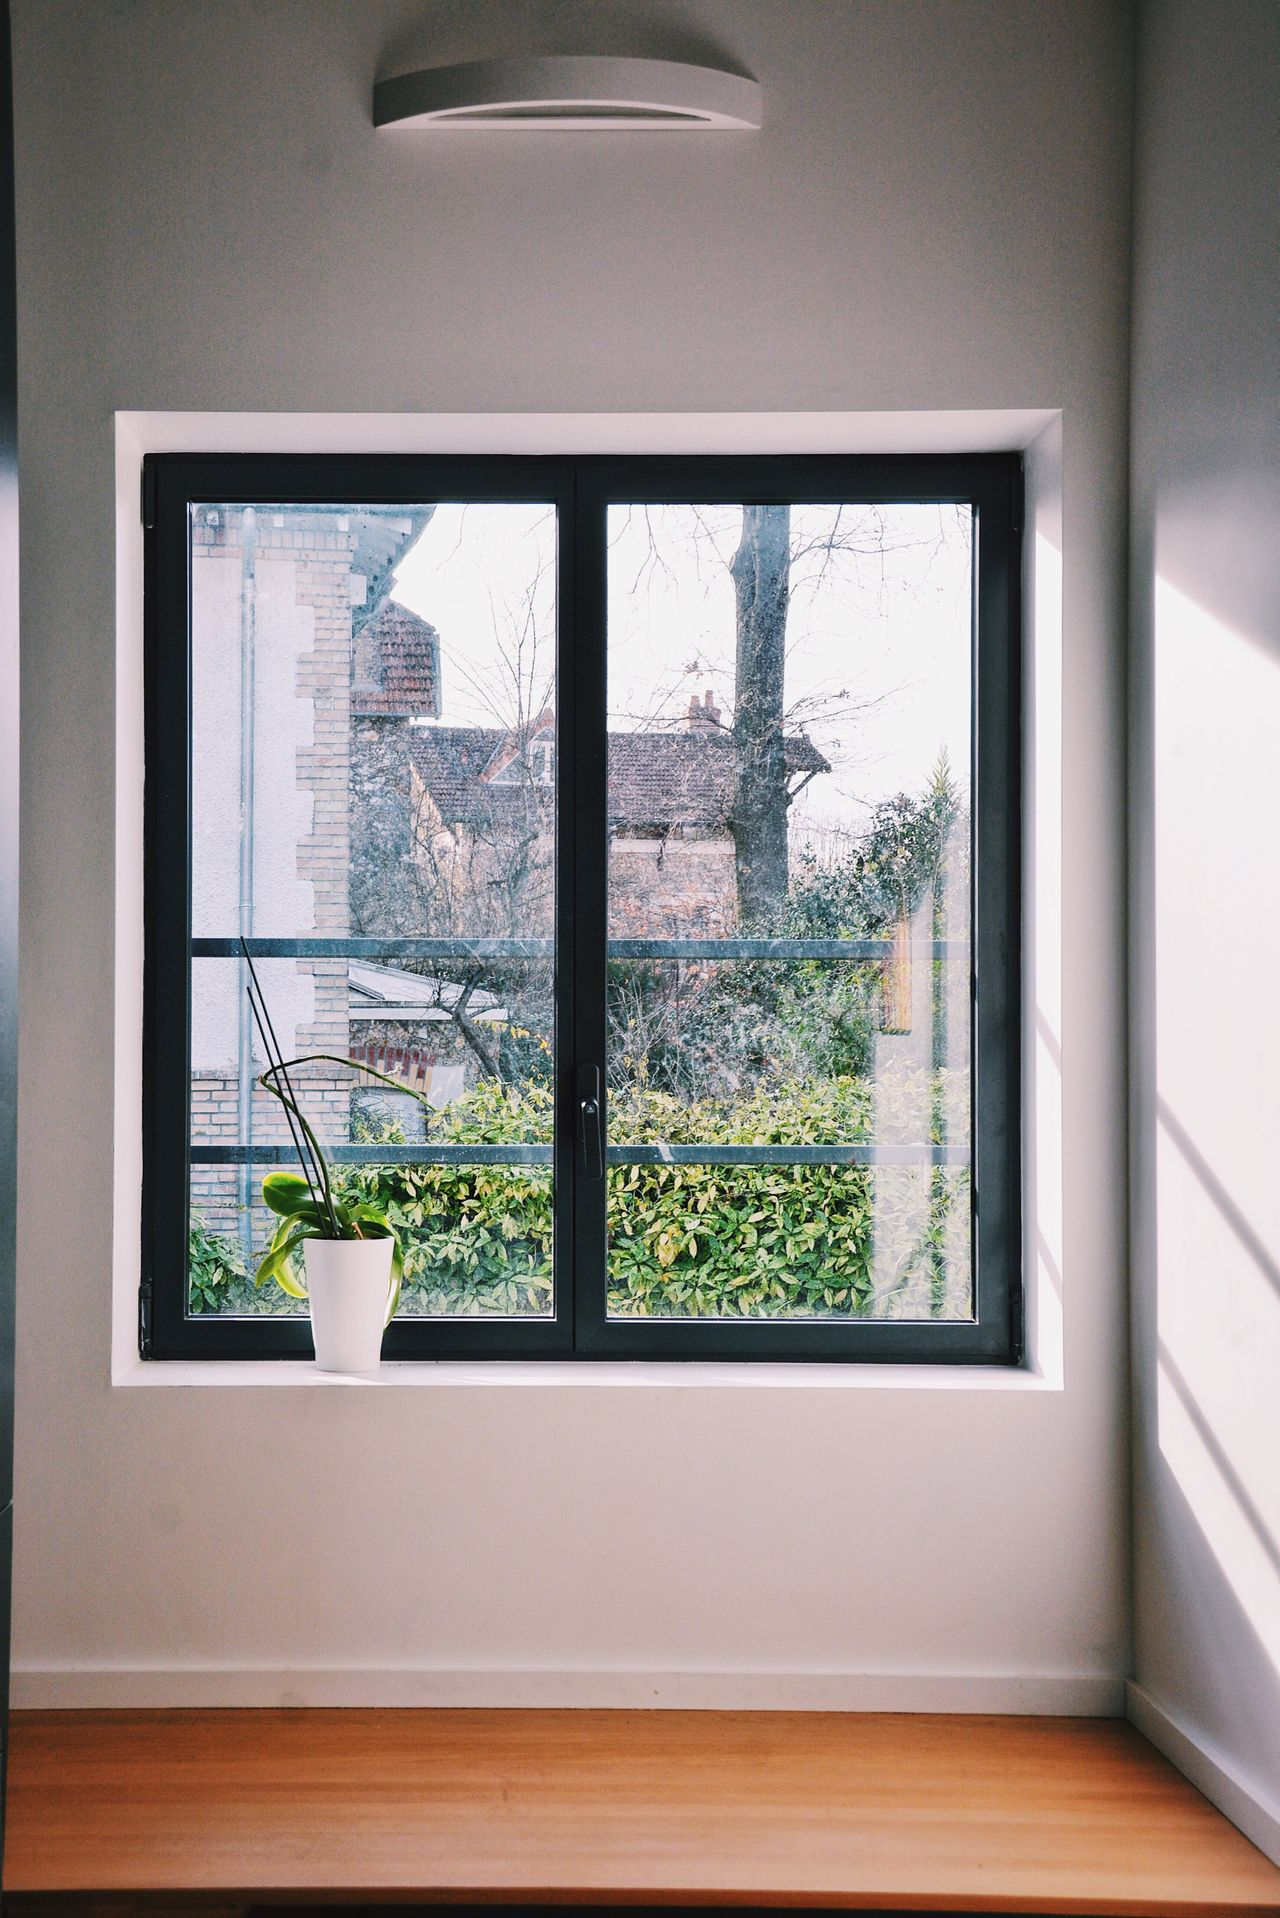 A window of memories. Window Indoors  Window Sill Home Interior Architecture Frosted Glass Interior Design Decor Home Home Is Where The Art Is Home Sweet Home Home Decor Outside